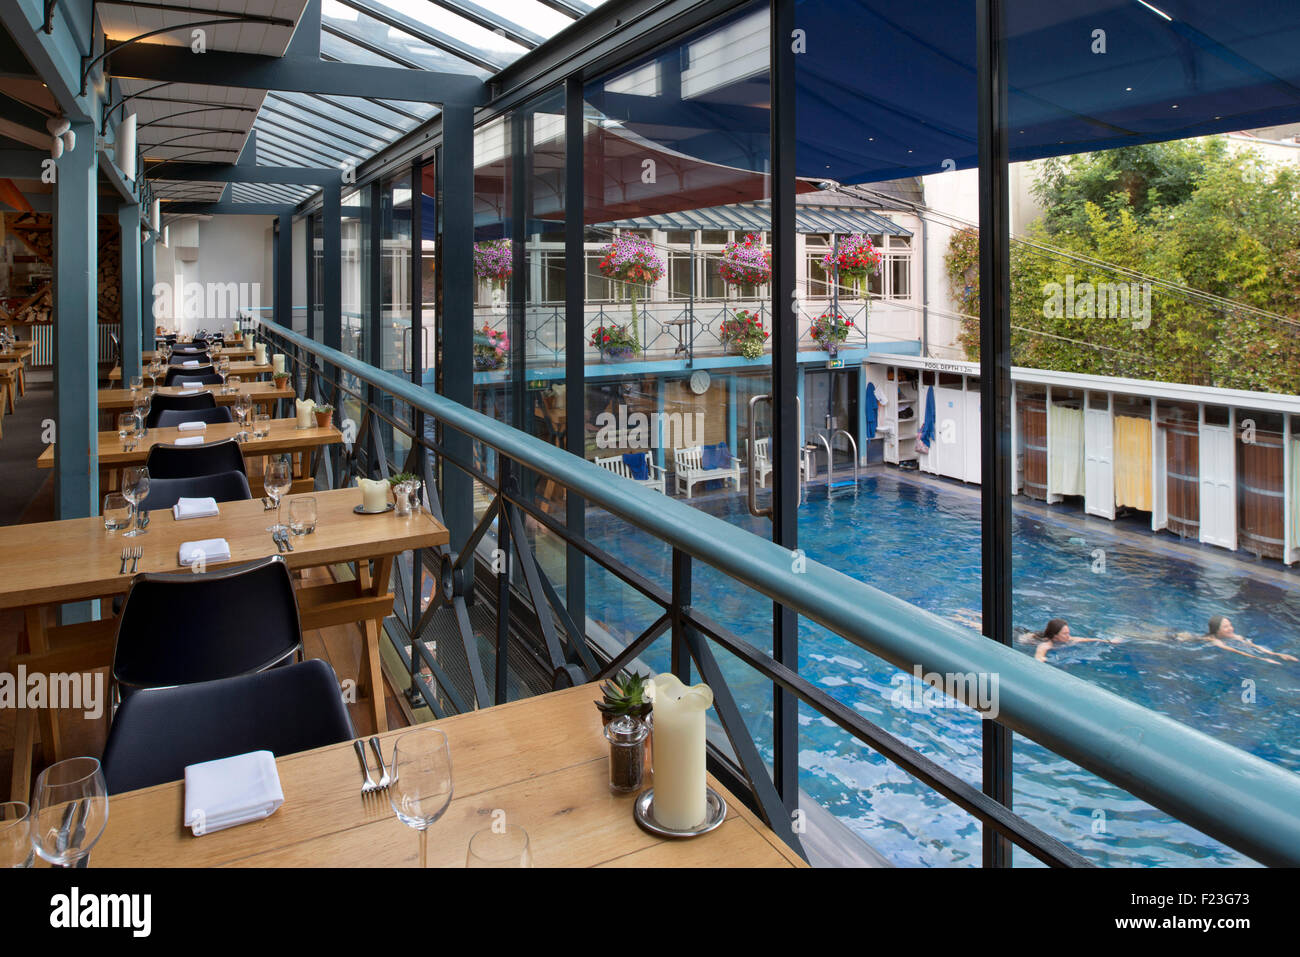 The Lido Spa Restaurant Clifton Bristol Which Includes